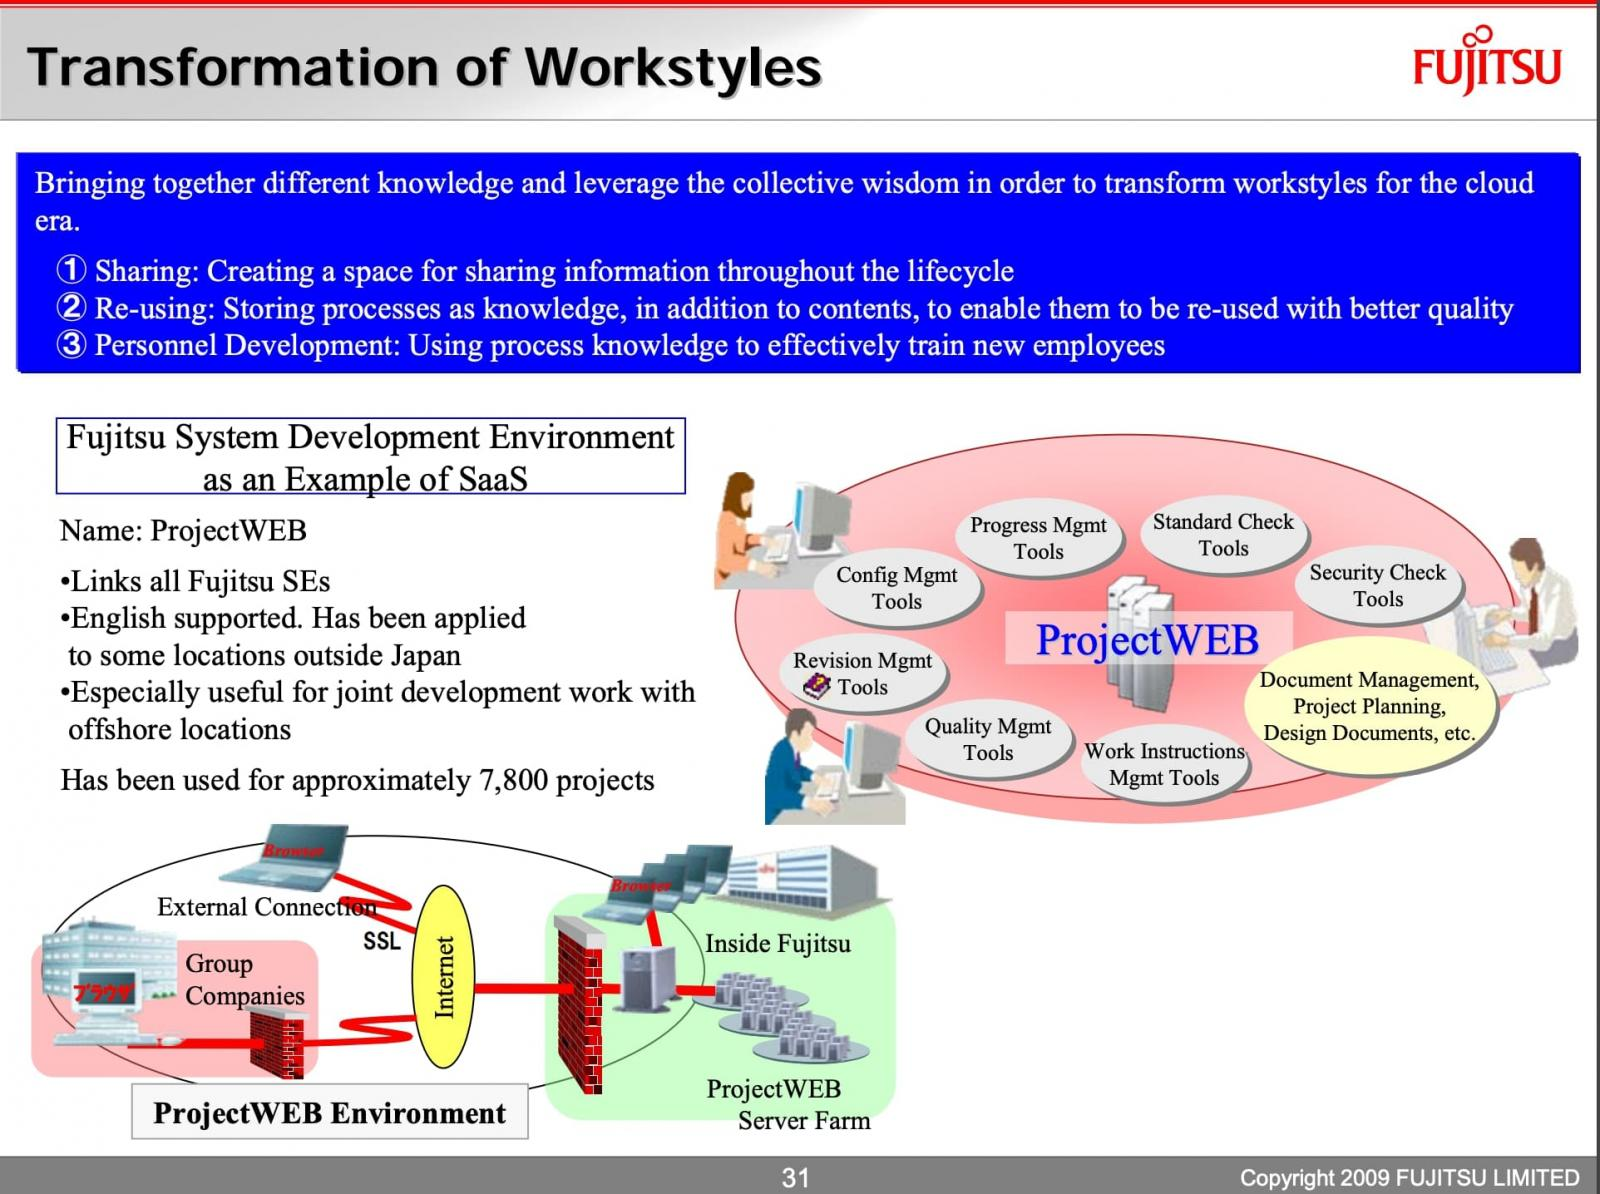 Cybersecurity, Fujitsu, Government, Supply-Chain Attack, Vulnerability, Security, InfoSec, Computer Security,fujitsu hack, fujitsu hacked, fujitsu data breach, fujitsu data leak, projectweb hacked, projectweb , projectweb fujitsu, fujitsu cyberattack,  Japanese Ministry of Foreign Affairs suffered a data breach, Computer Security, computers, cyber news, cyber security news, cyber security news today, cyber security updates, cyber updates, cyberattack, cyberattacks, cybersafe news, cybersecurity, data breach, data stealing malware, E-Commerce, fake malware, hacker news, hacking news, how to hack, information security, InfoSec, infosec news, linux, Mac, Malware, malware removal, network security, online security, personal data exposed, phishing attack, ransomware, ransomware attack, ransomware gang, ransomware group, ransomware malware, ransomware news, RCE, Remote Access Trojan, Remote Code Execution, rootkit, Security, smartphone, software vulnerability, spyware, Supply Chain, support, system update app, system update malware app, tech, tech news, tech support, tech updates, technical support, trojan, virus, virus removal, Vulnerability, what is ransomware, fujitsu attack, fujitsu hack,